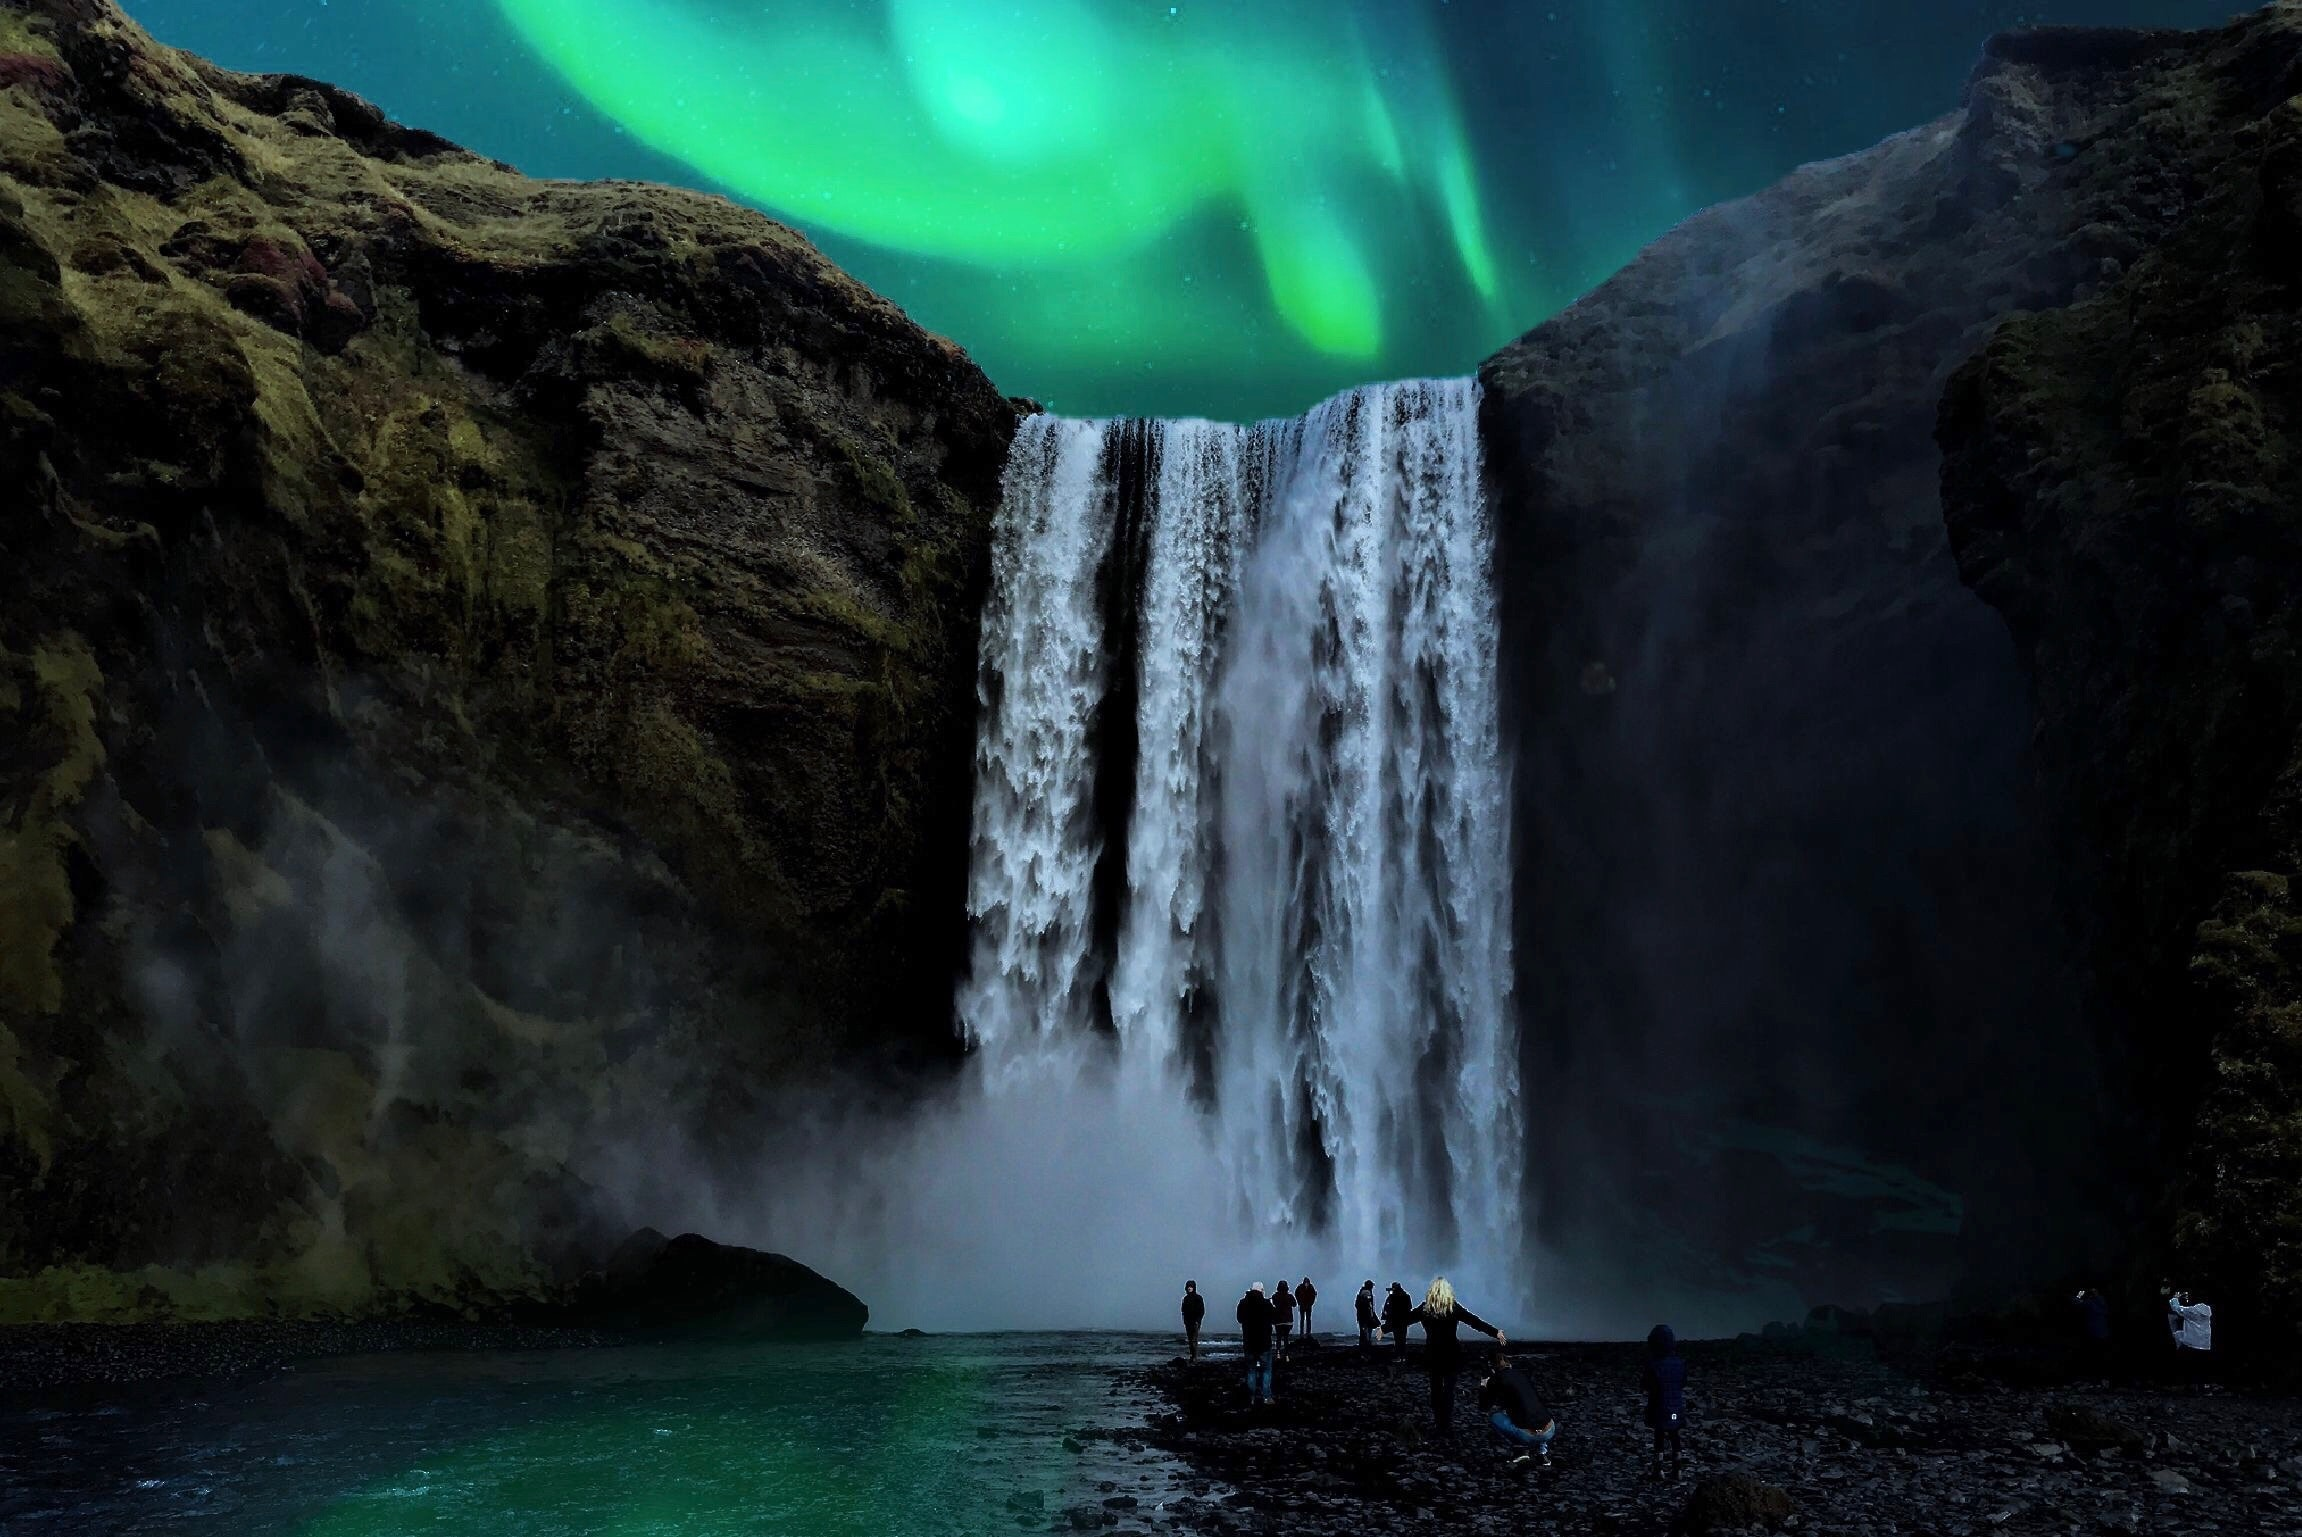 Aurora borealis and a beautiful waterfall